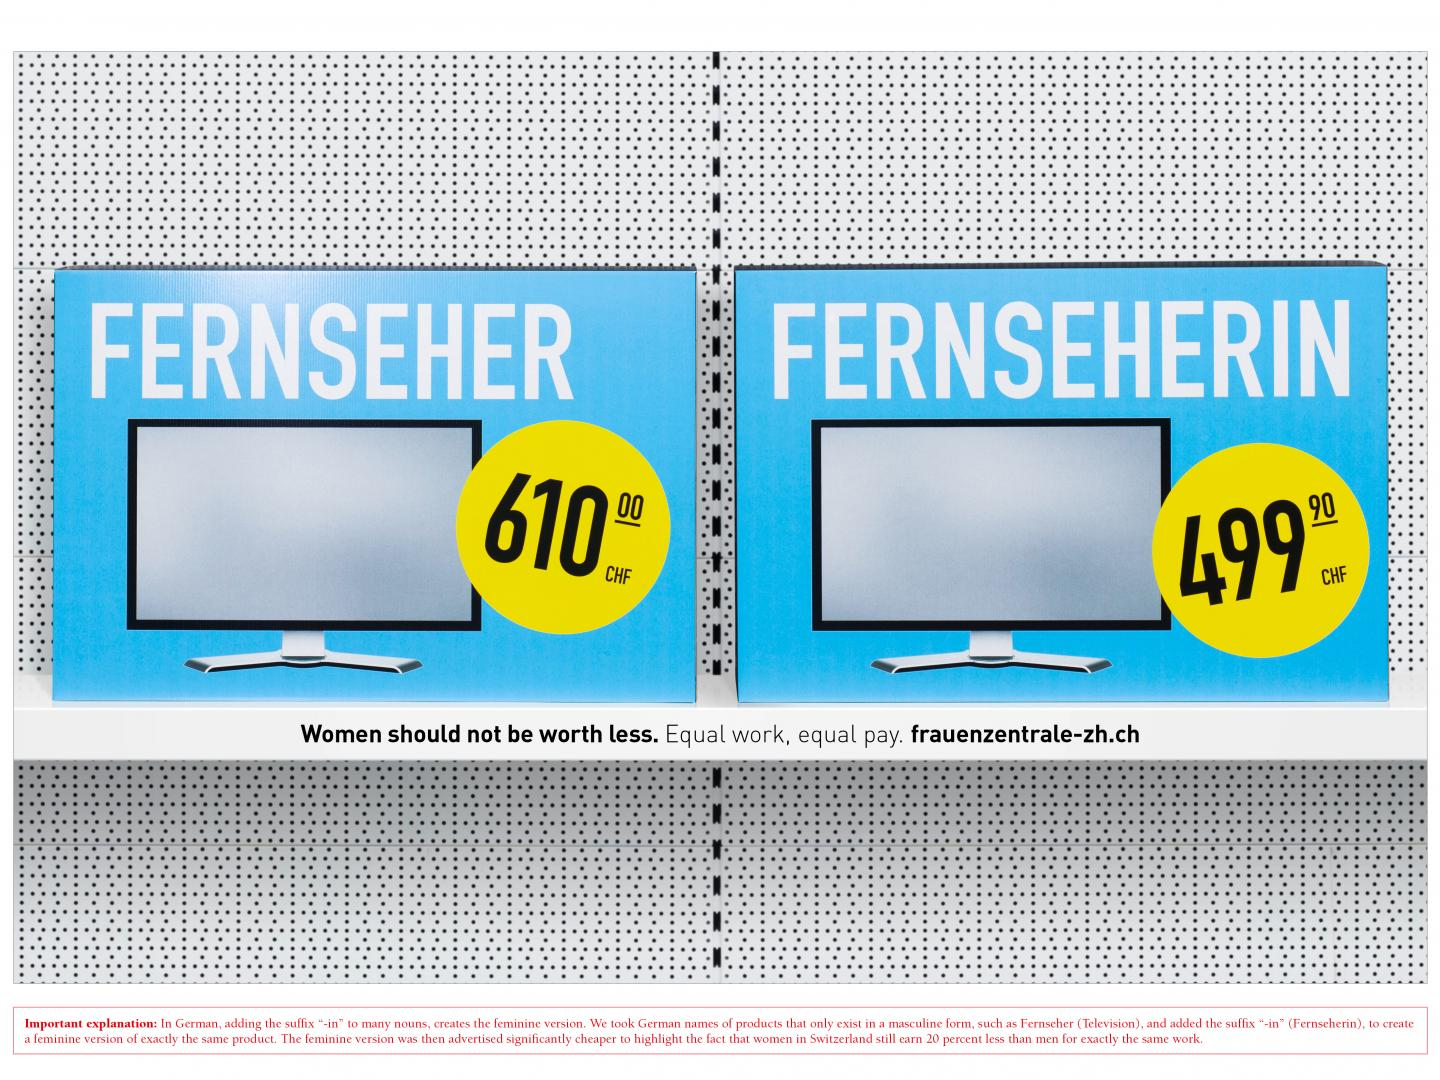 Image for FernseherIn